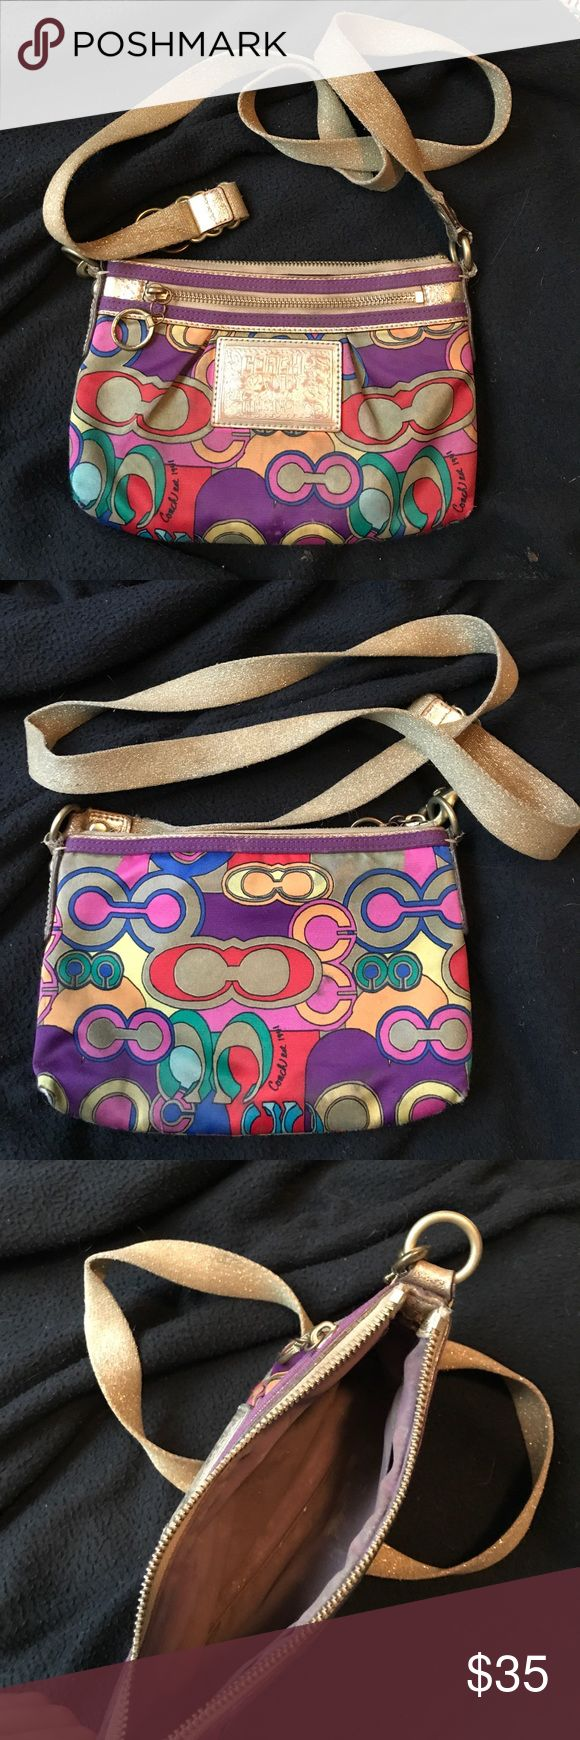 Coach Poppy Cross body bag! Multi🌈 Coach poppy crossbody bag! Used condition but in great shape. Some frays, and wear on the coach emblem. Shown in pictures! Inside is a little dirty will try to wash if interested. Open to offers. Coach Bags Crossbody Bags